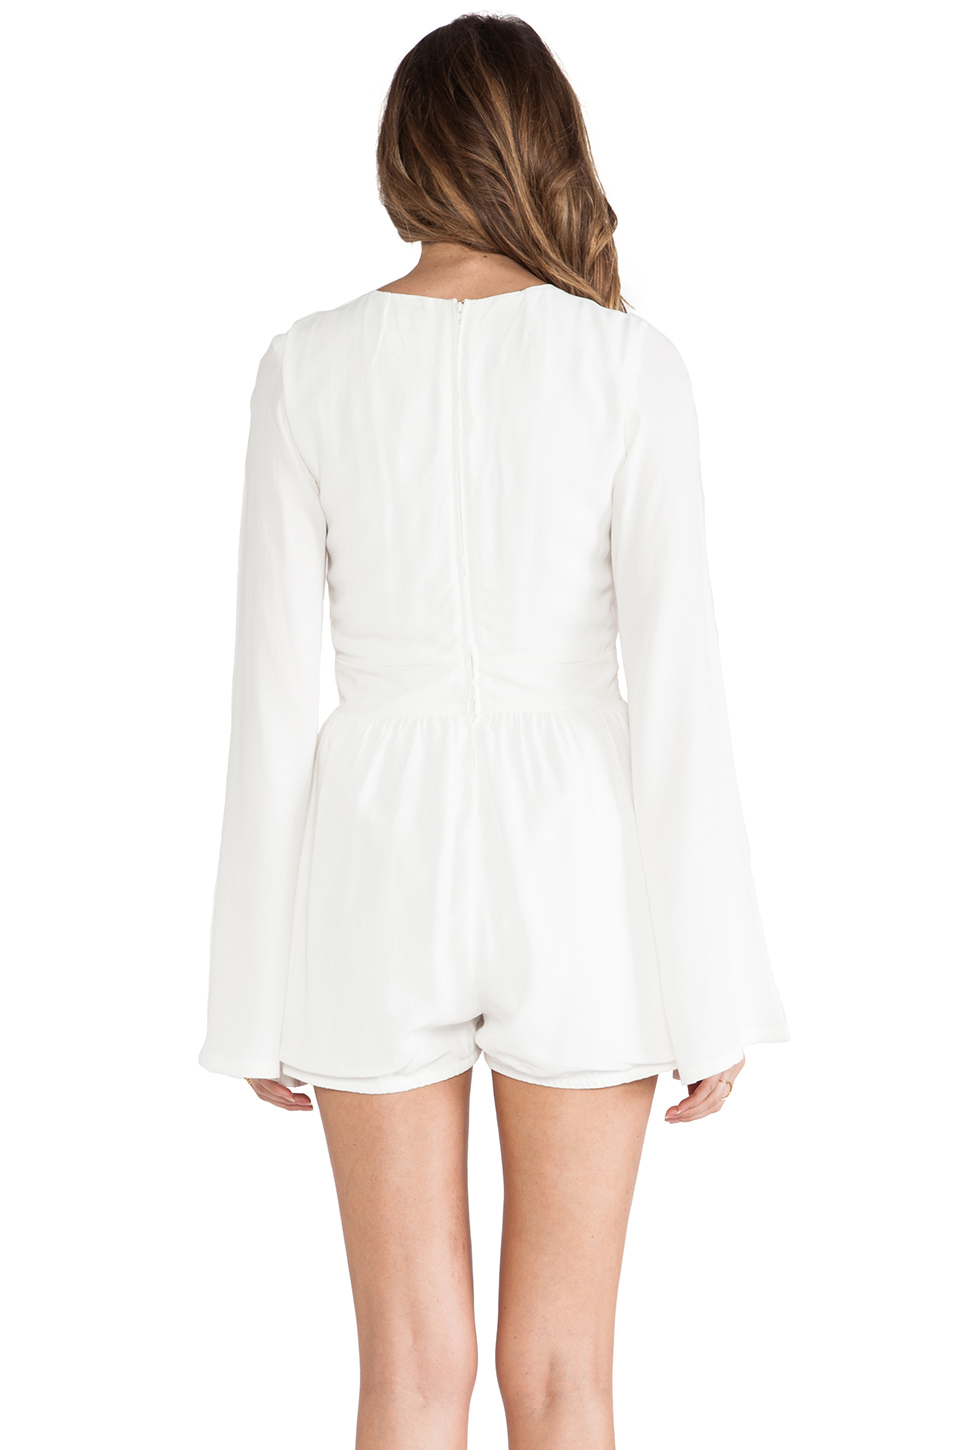 MINKPINK Follow Me To Heaven Playsuit in White | REVOLVE